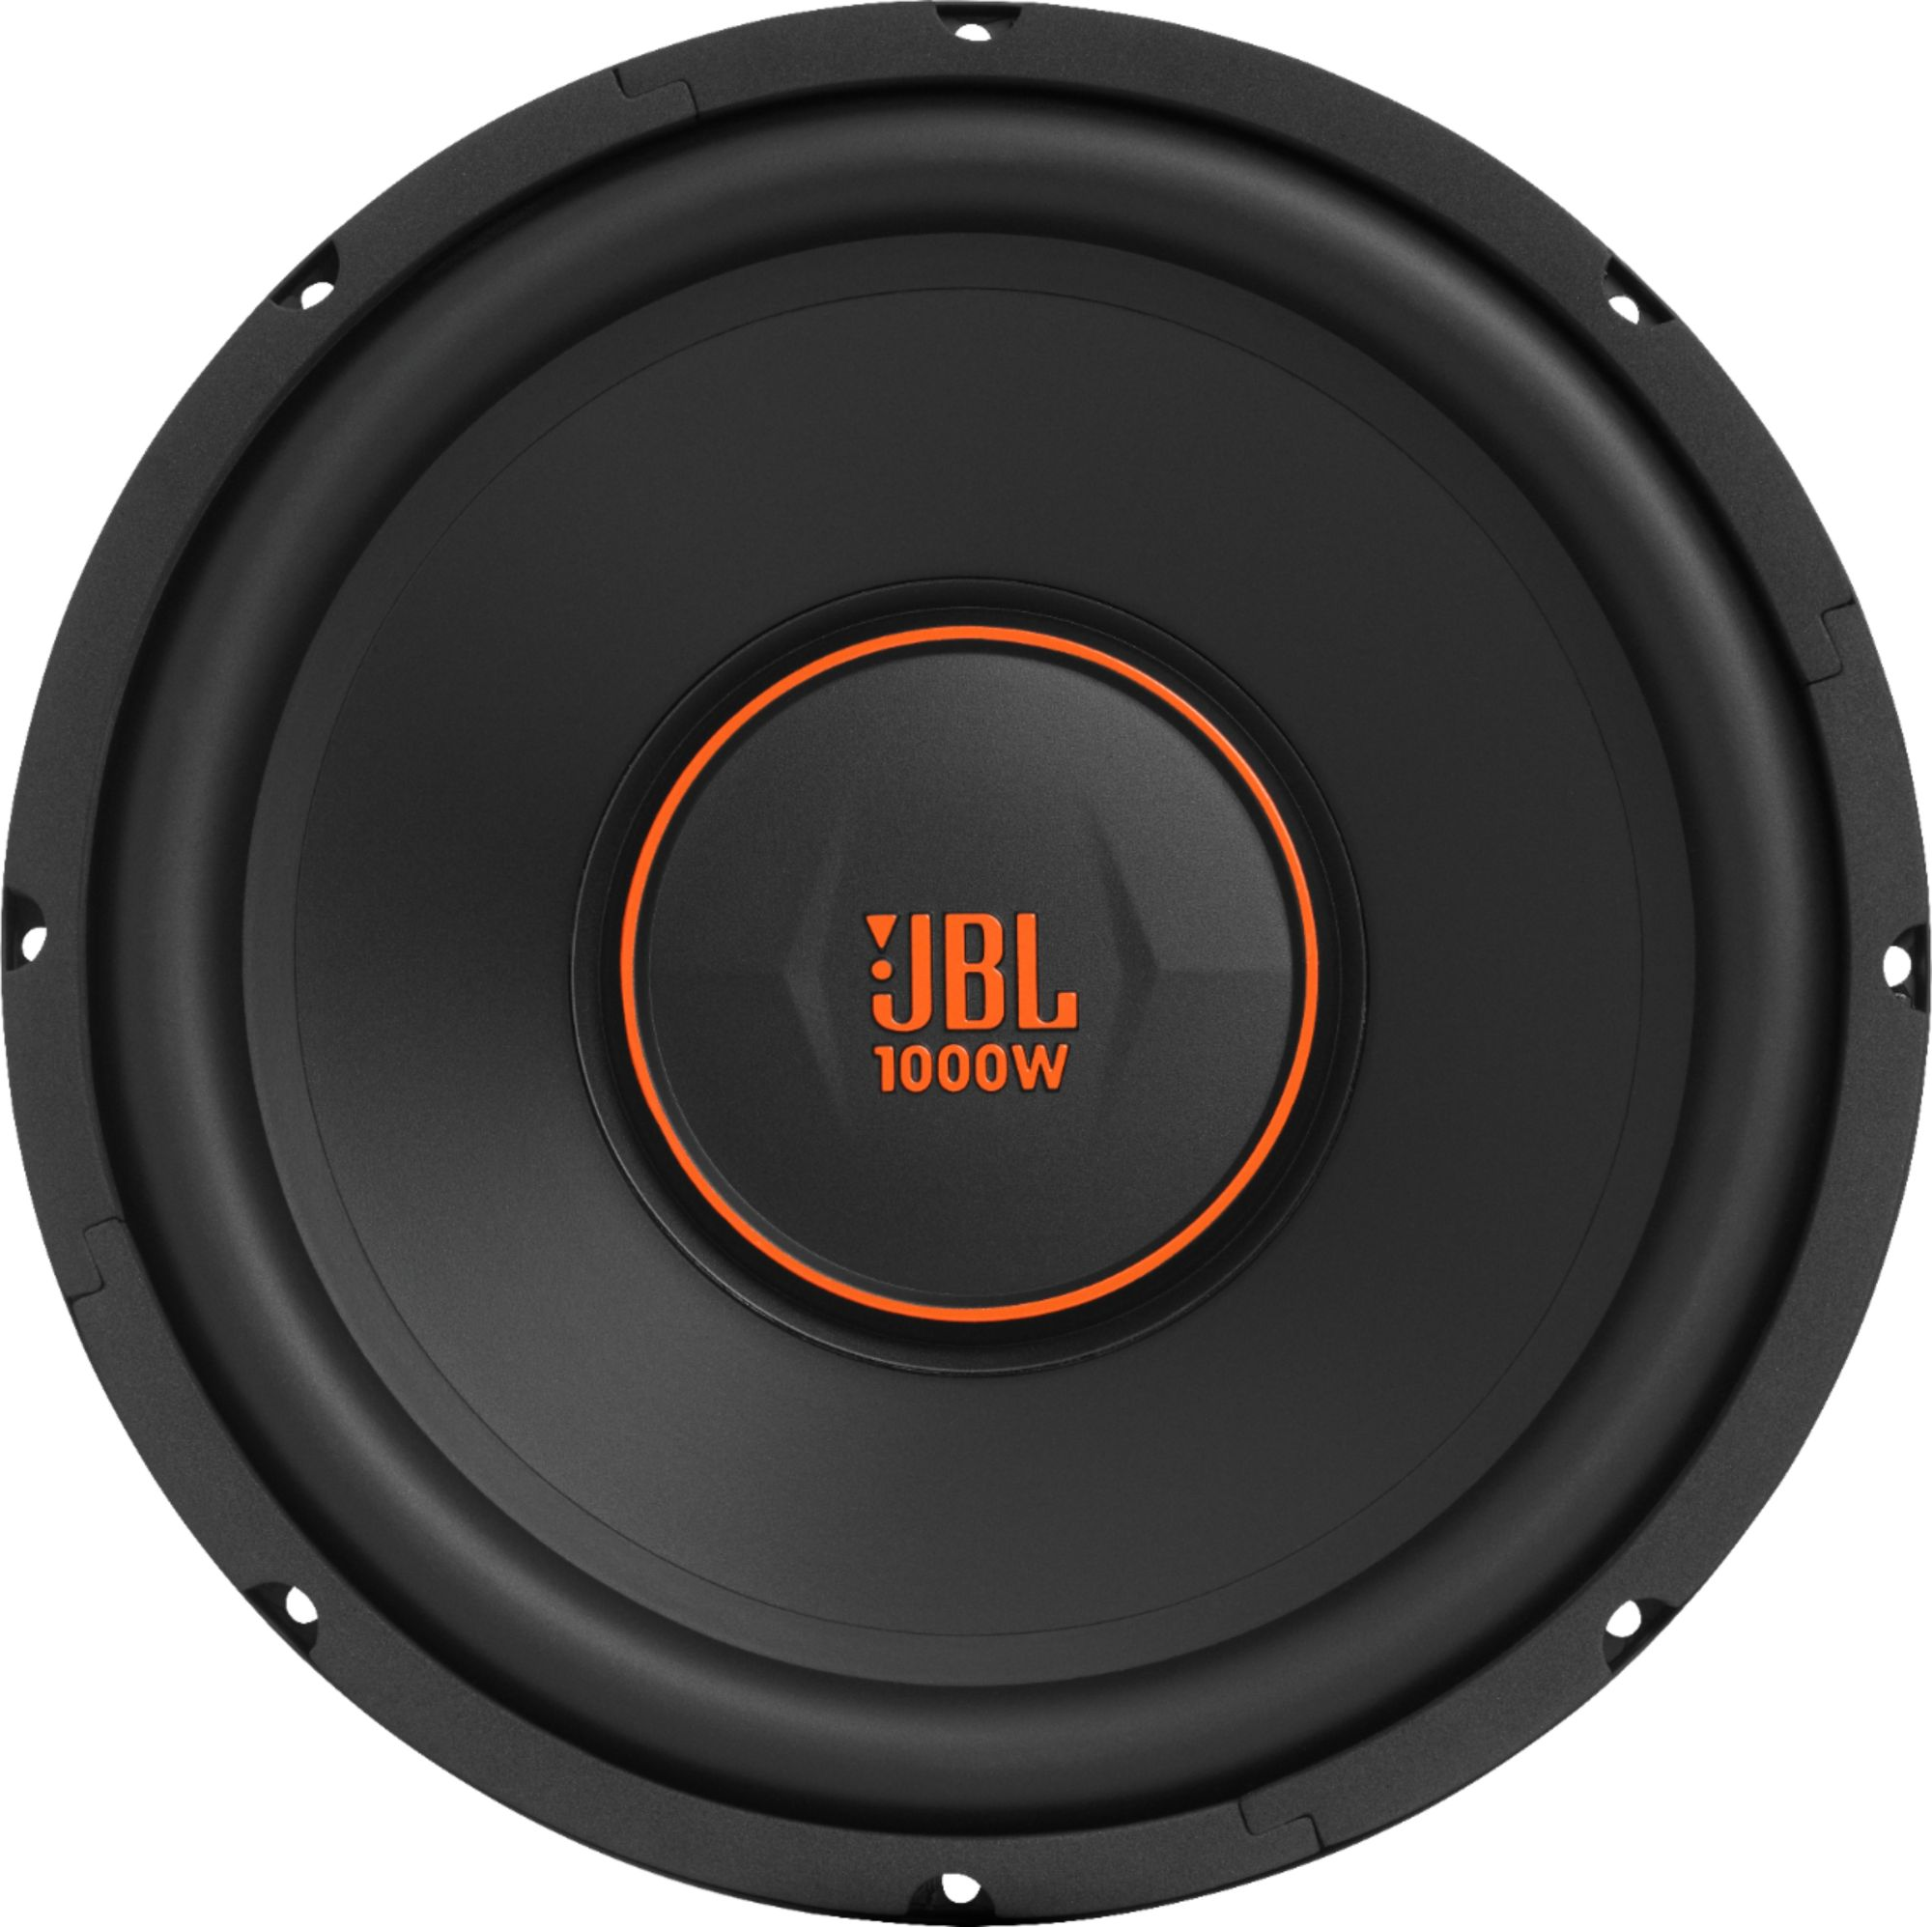 hight resolution of jbl gx series 12 single voice coil 4 ohm subwoofer black gx1200 best buy